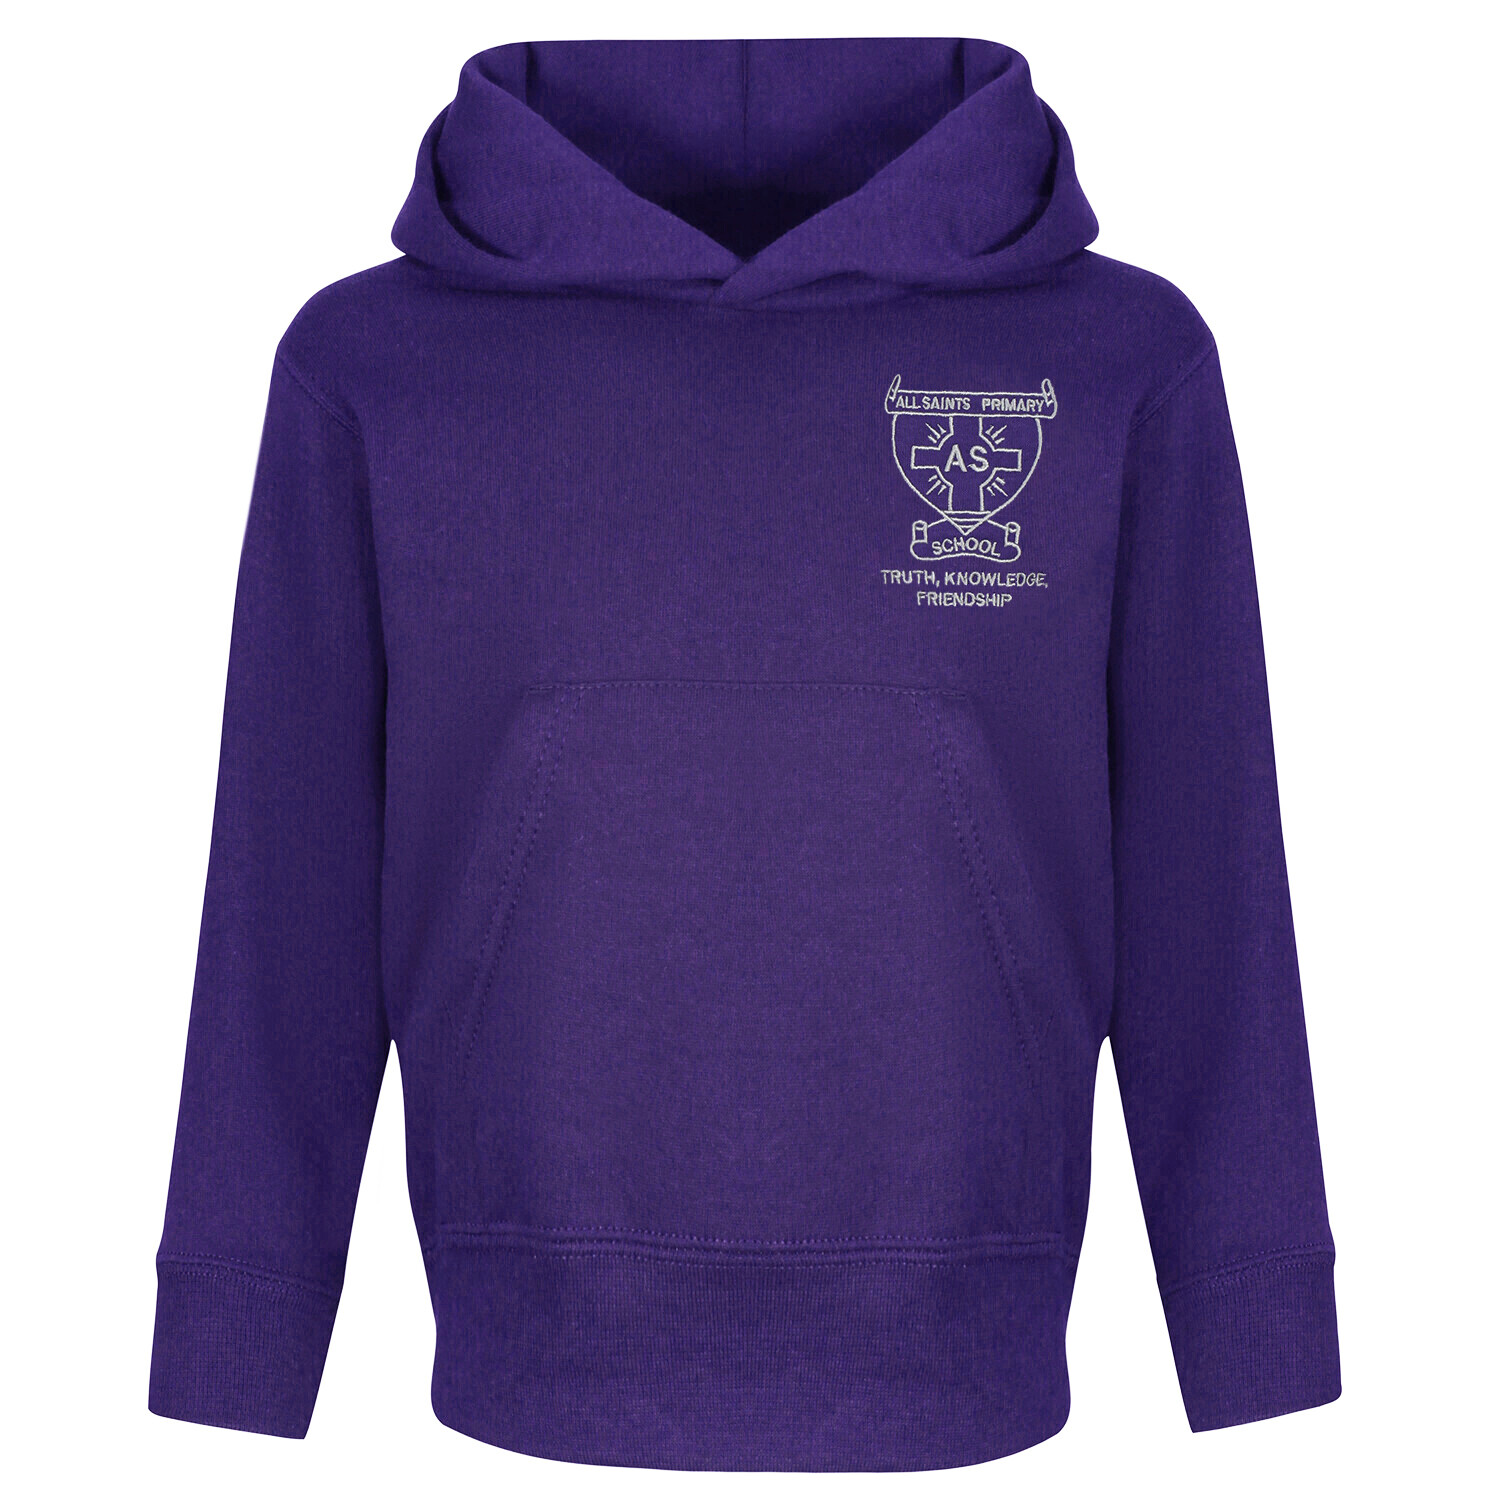 All Saints Primary Staff Hoody (Unisex) (RCSGD57)